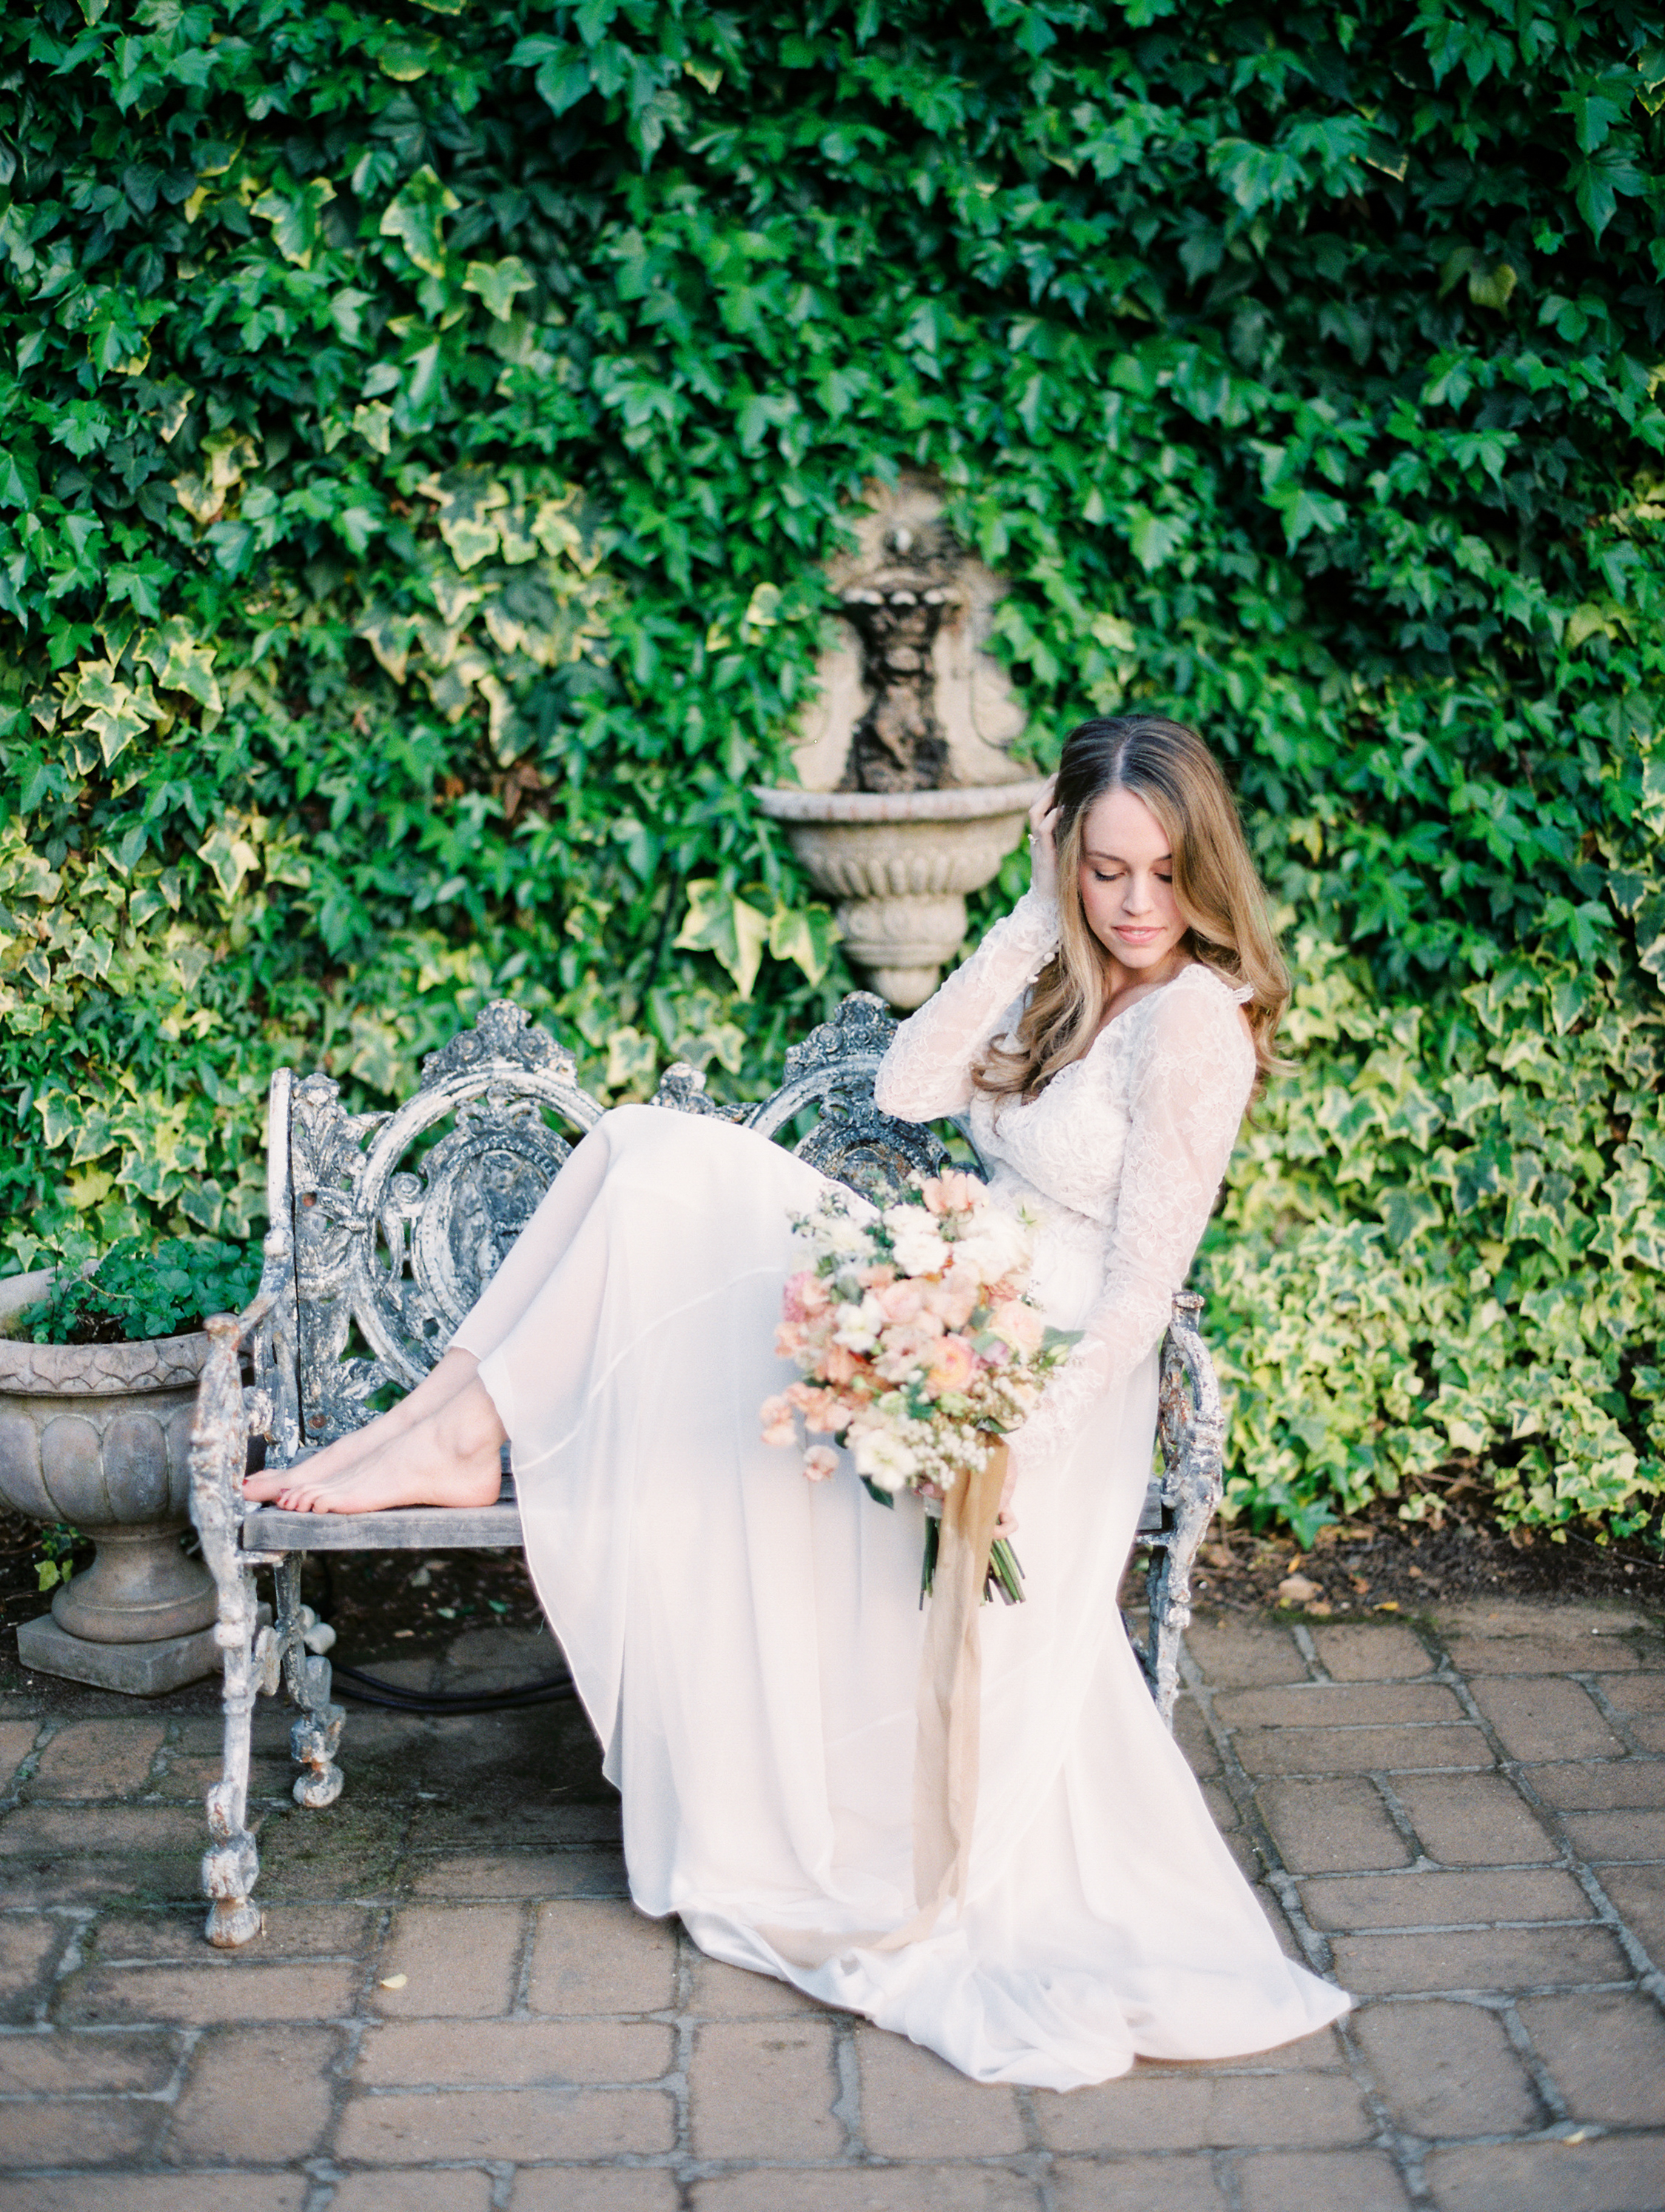 Holman+Ranch+Bridal+M-32.jpg